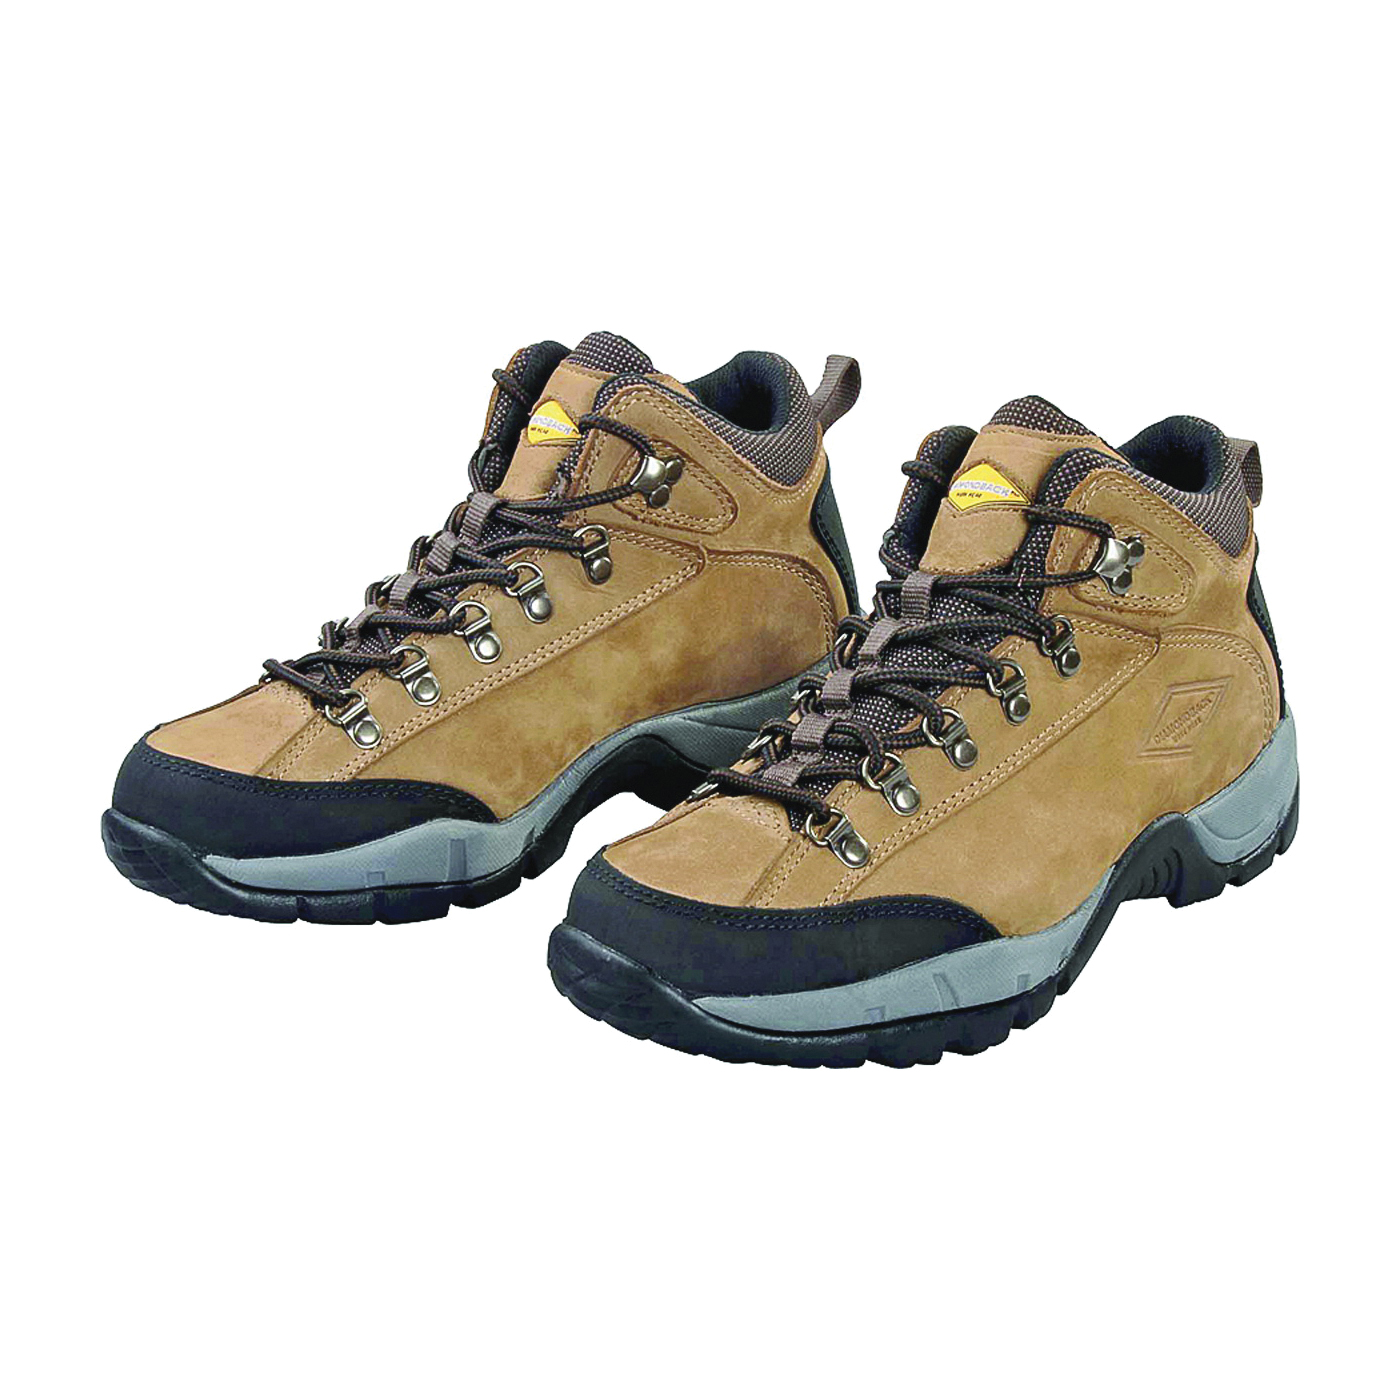 Diamondback HIKER-1-12